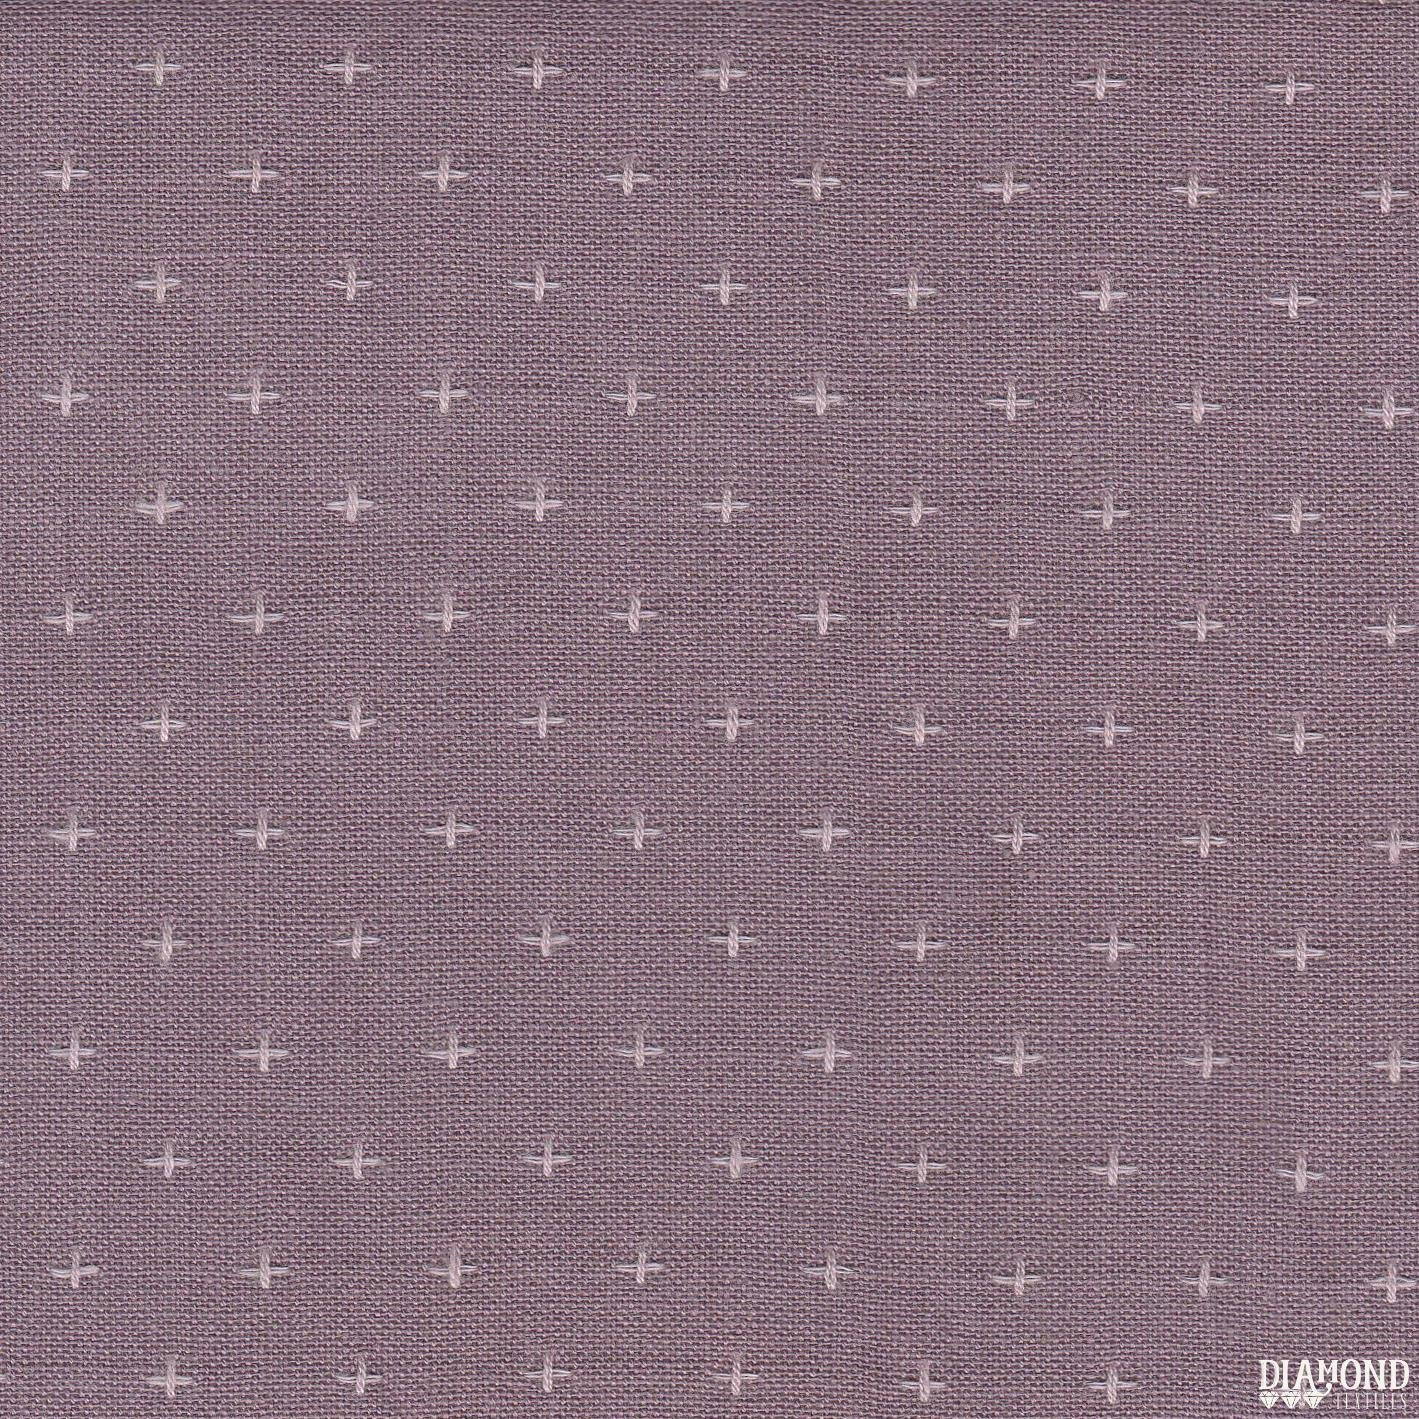 Diamond Textiles/Manchester 3148/Pinkish Purple with cream stitching